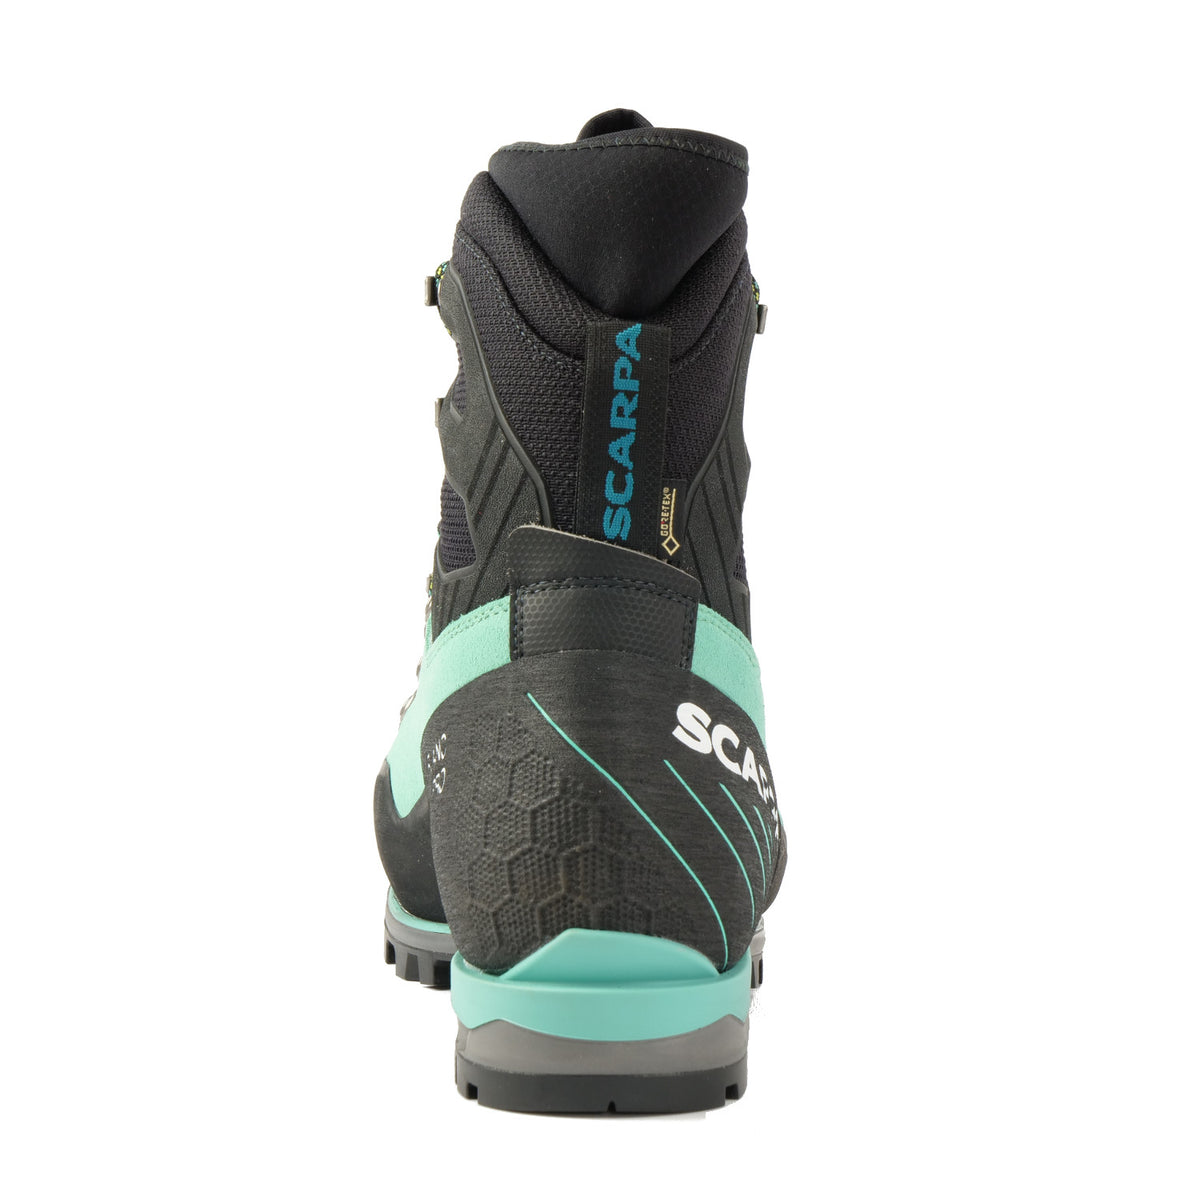 Rear view of the Scarpa Mont Blanc Pro GTX Womens with Mint Green Perwanger outer and black & grey AC sole unit and blue Scarpa logo on the pull tap